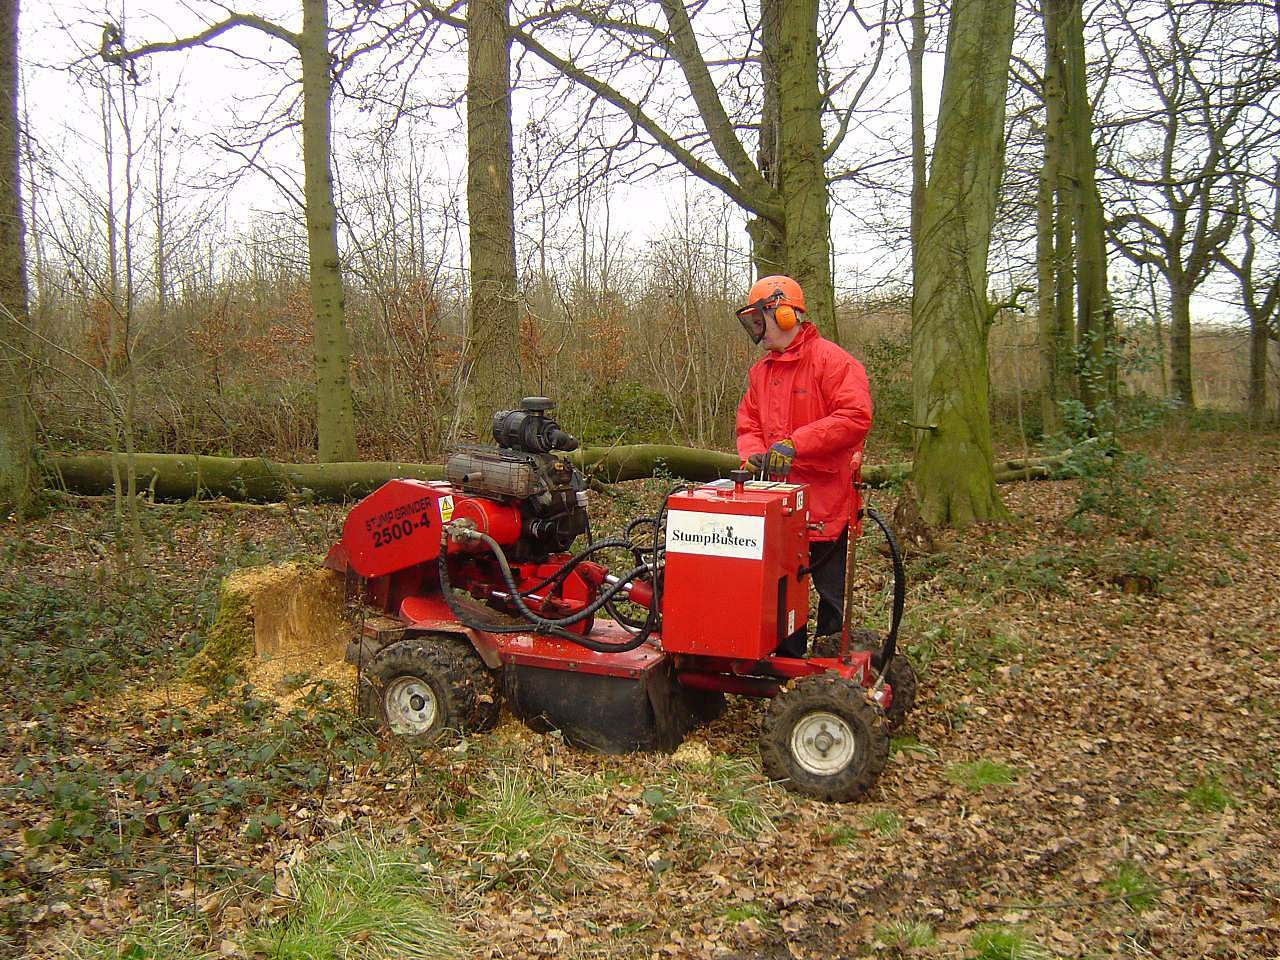 tree_stump_grinding_clear_site_for_replanting